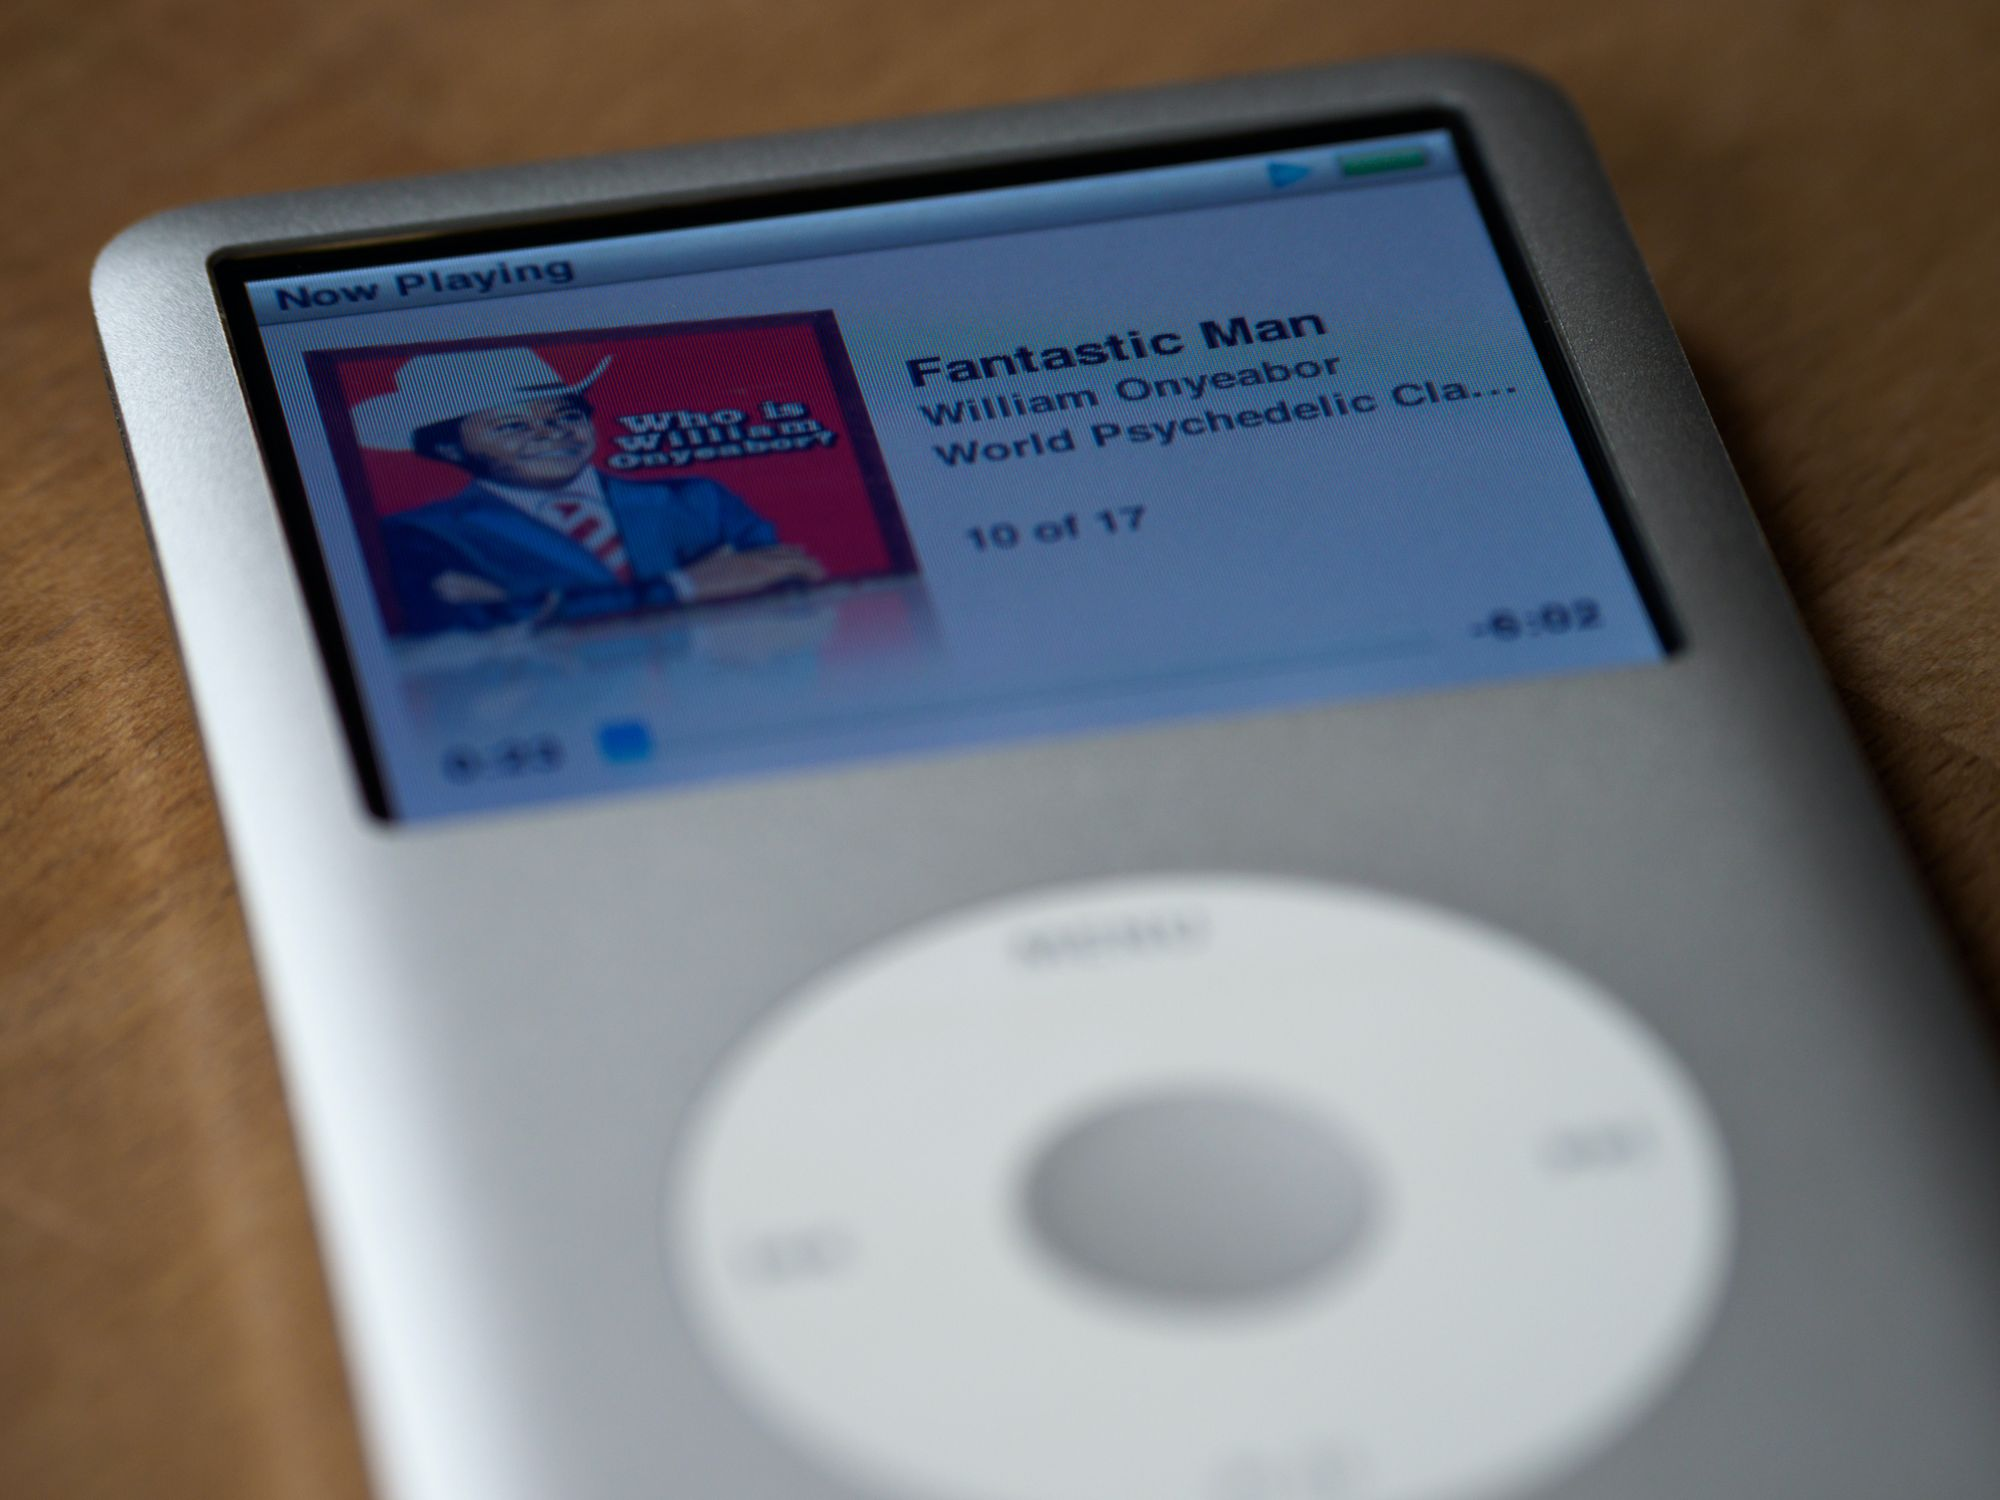 A silver Apple iPod with the scroll wheel and colour screen